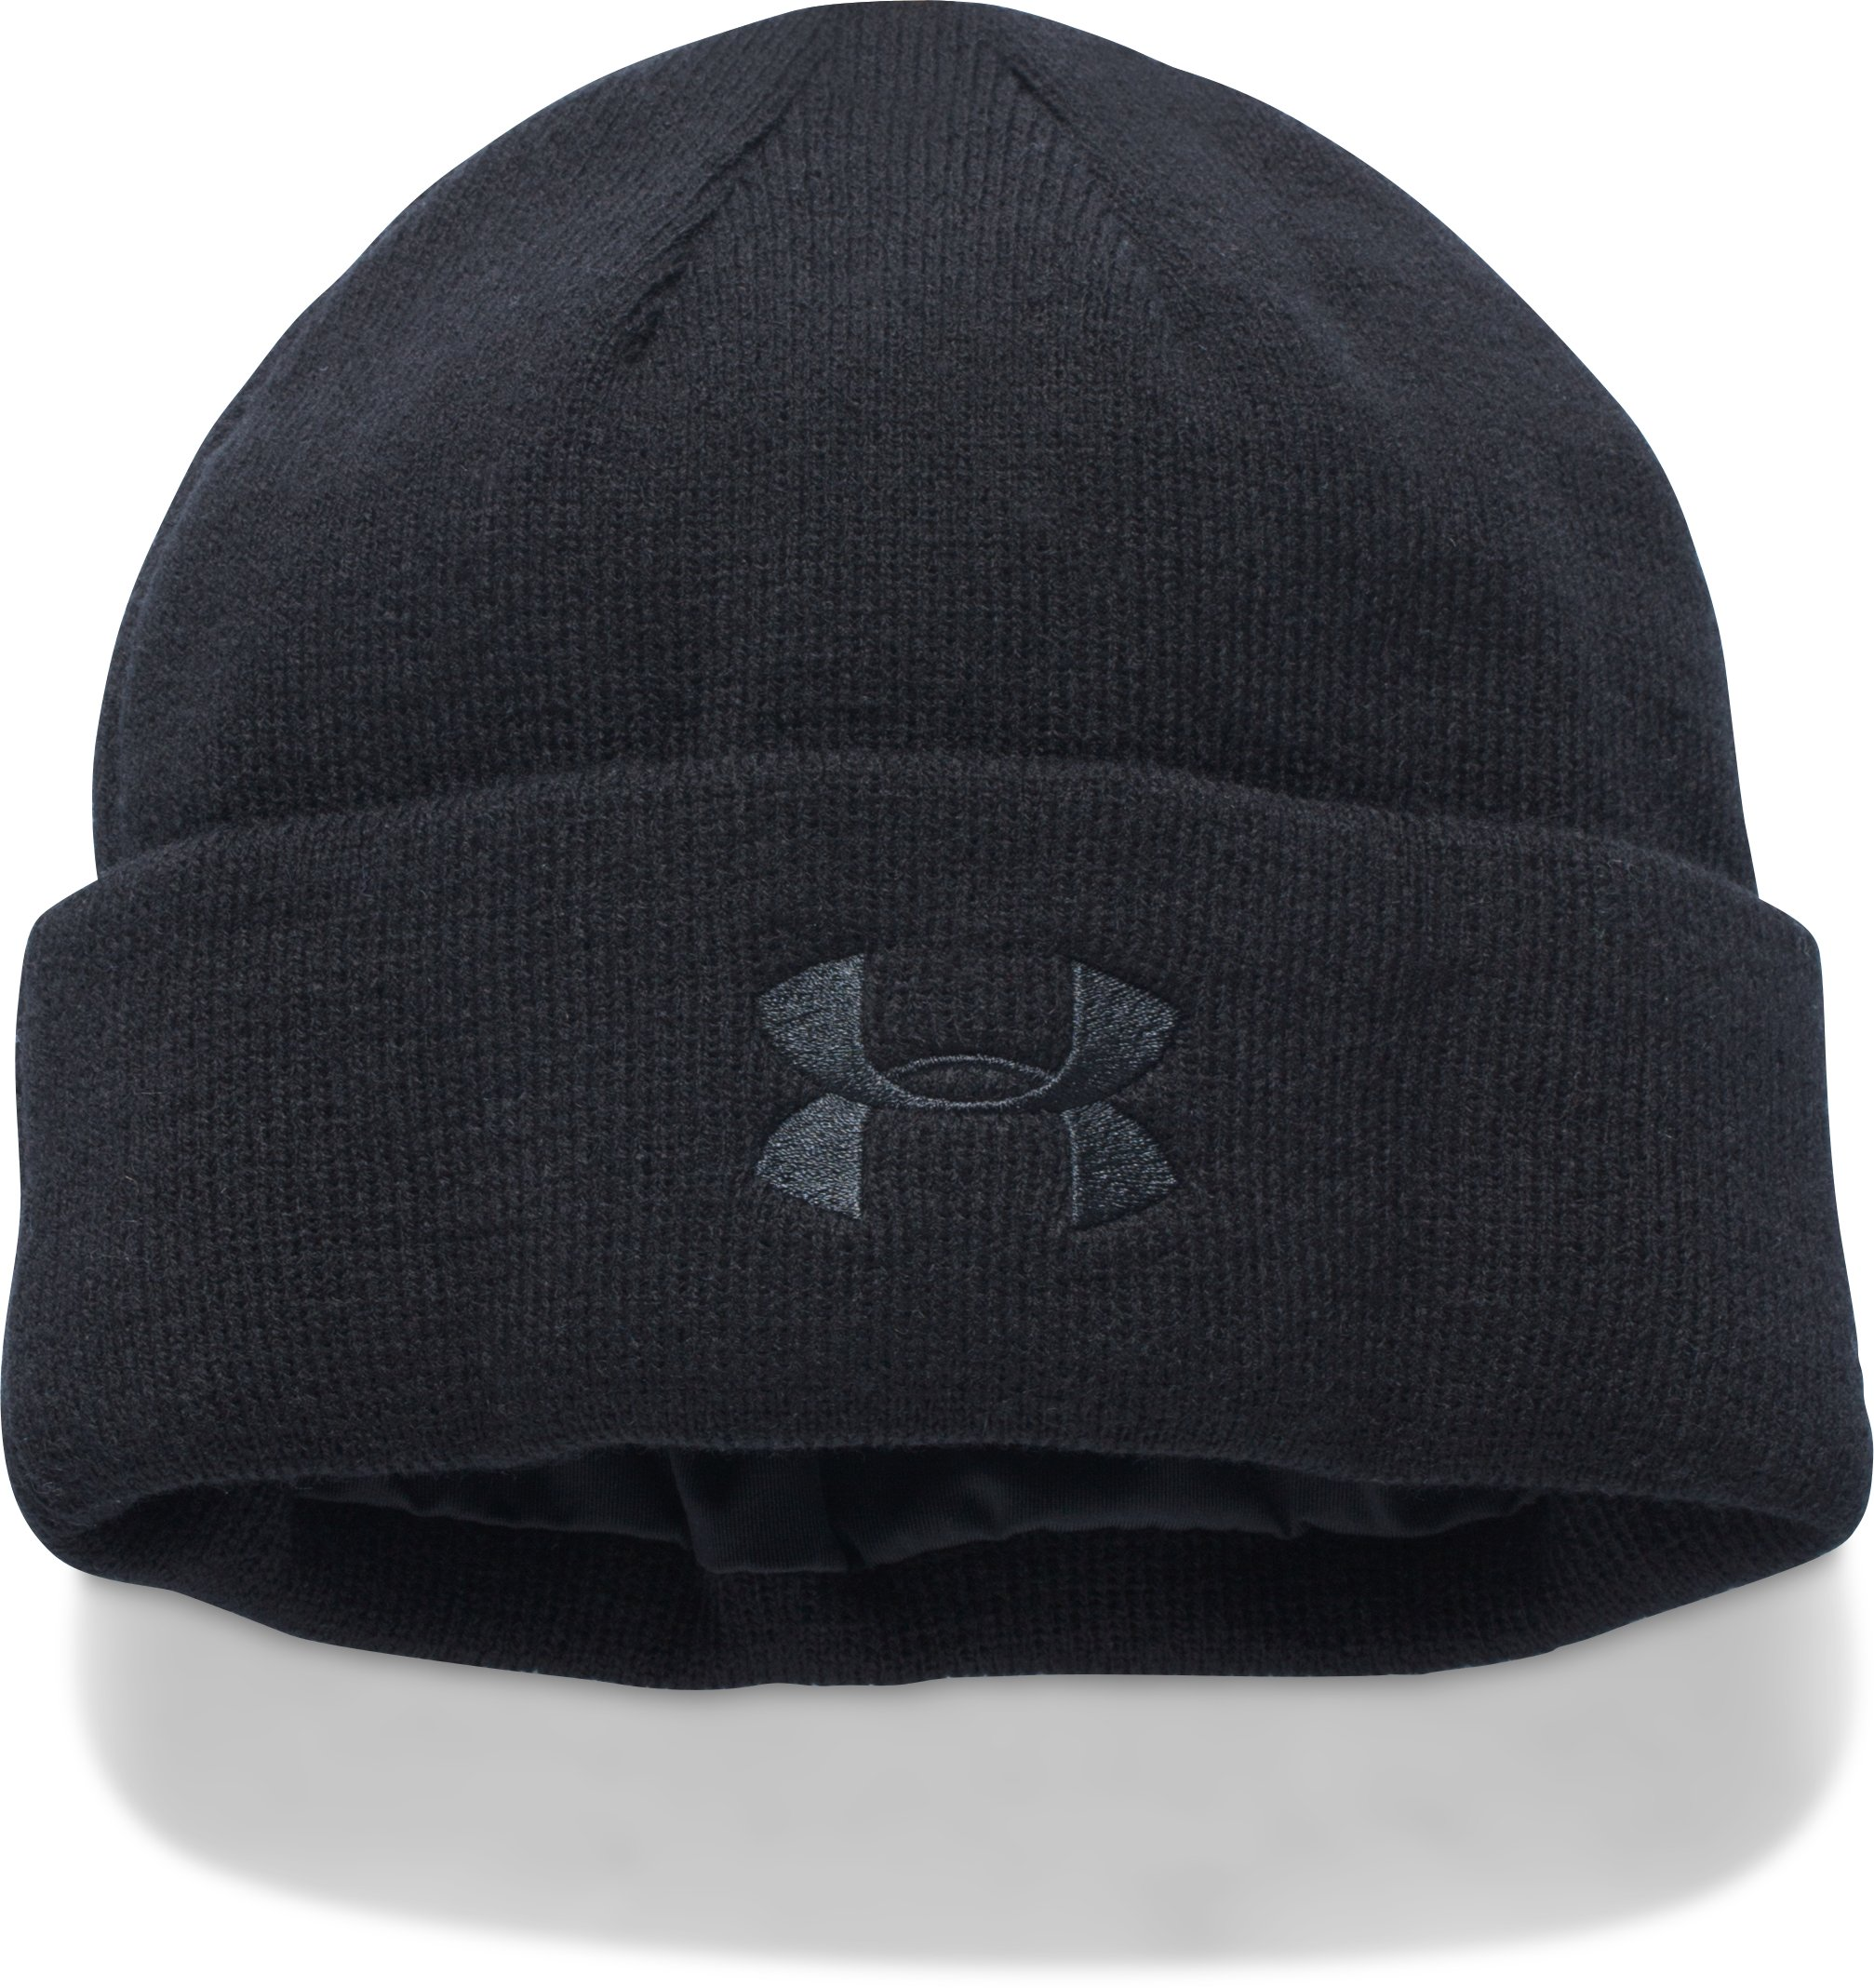 Men's Tactical Stealth Beanie, Black , undefined